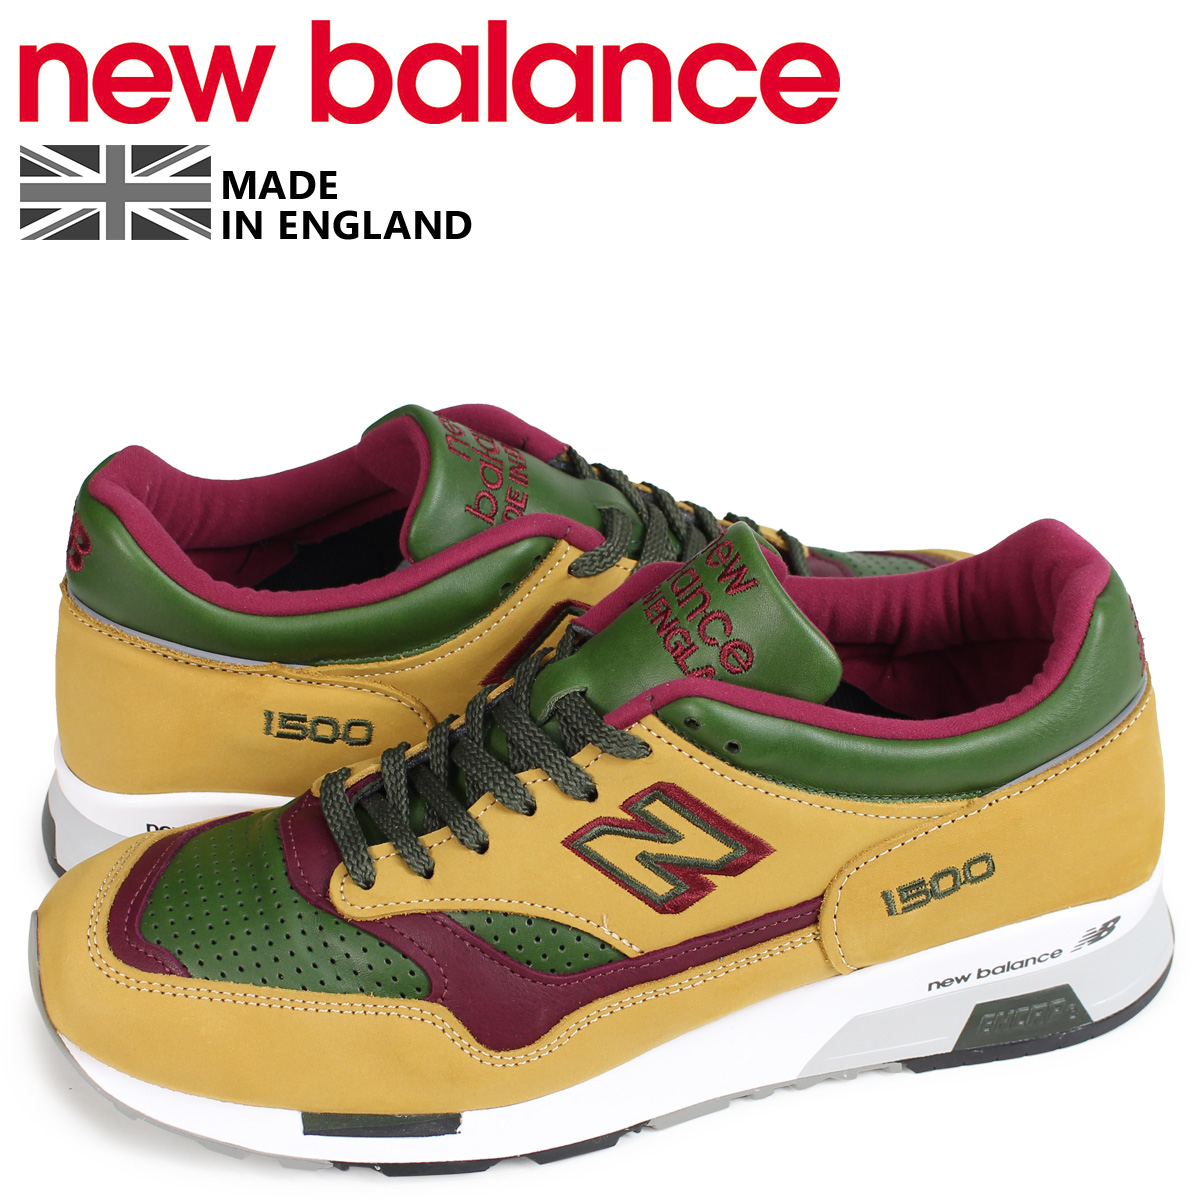 new arrival 3e0e4 fad10 New Balance new balance 1500 men's sneakers M1500TGB D Wise MADE IN UK brown